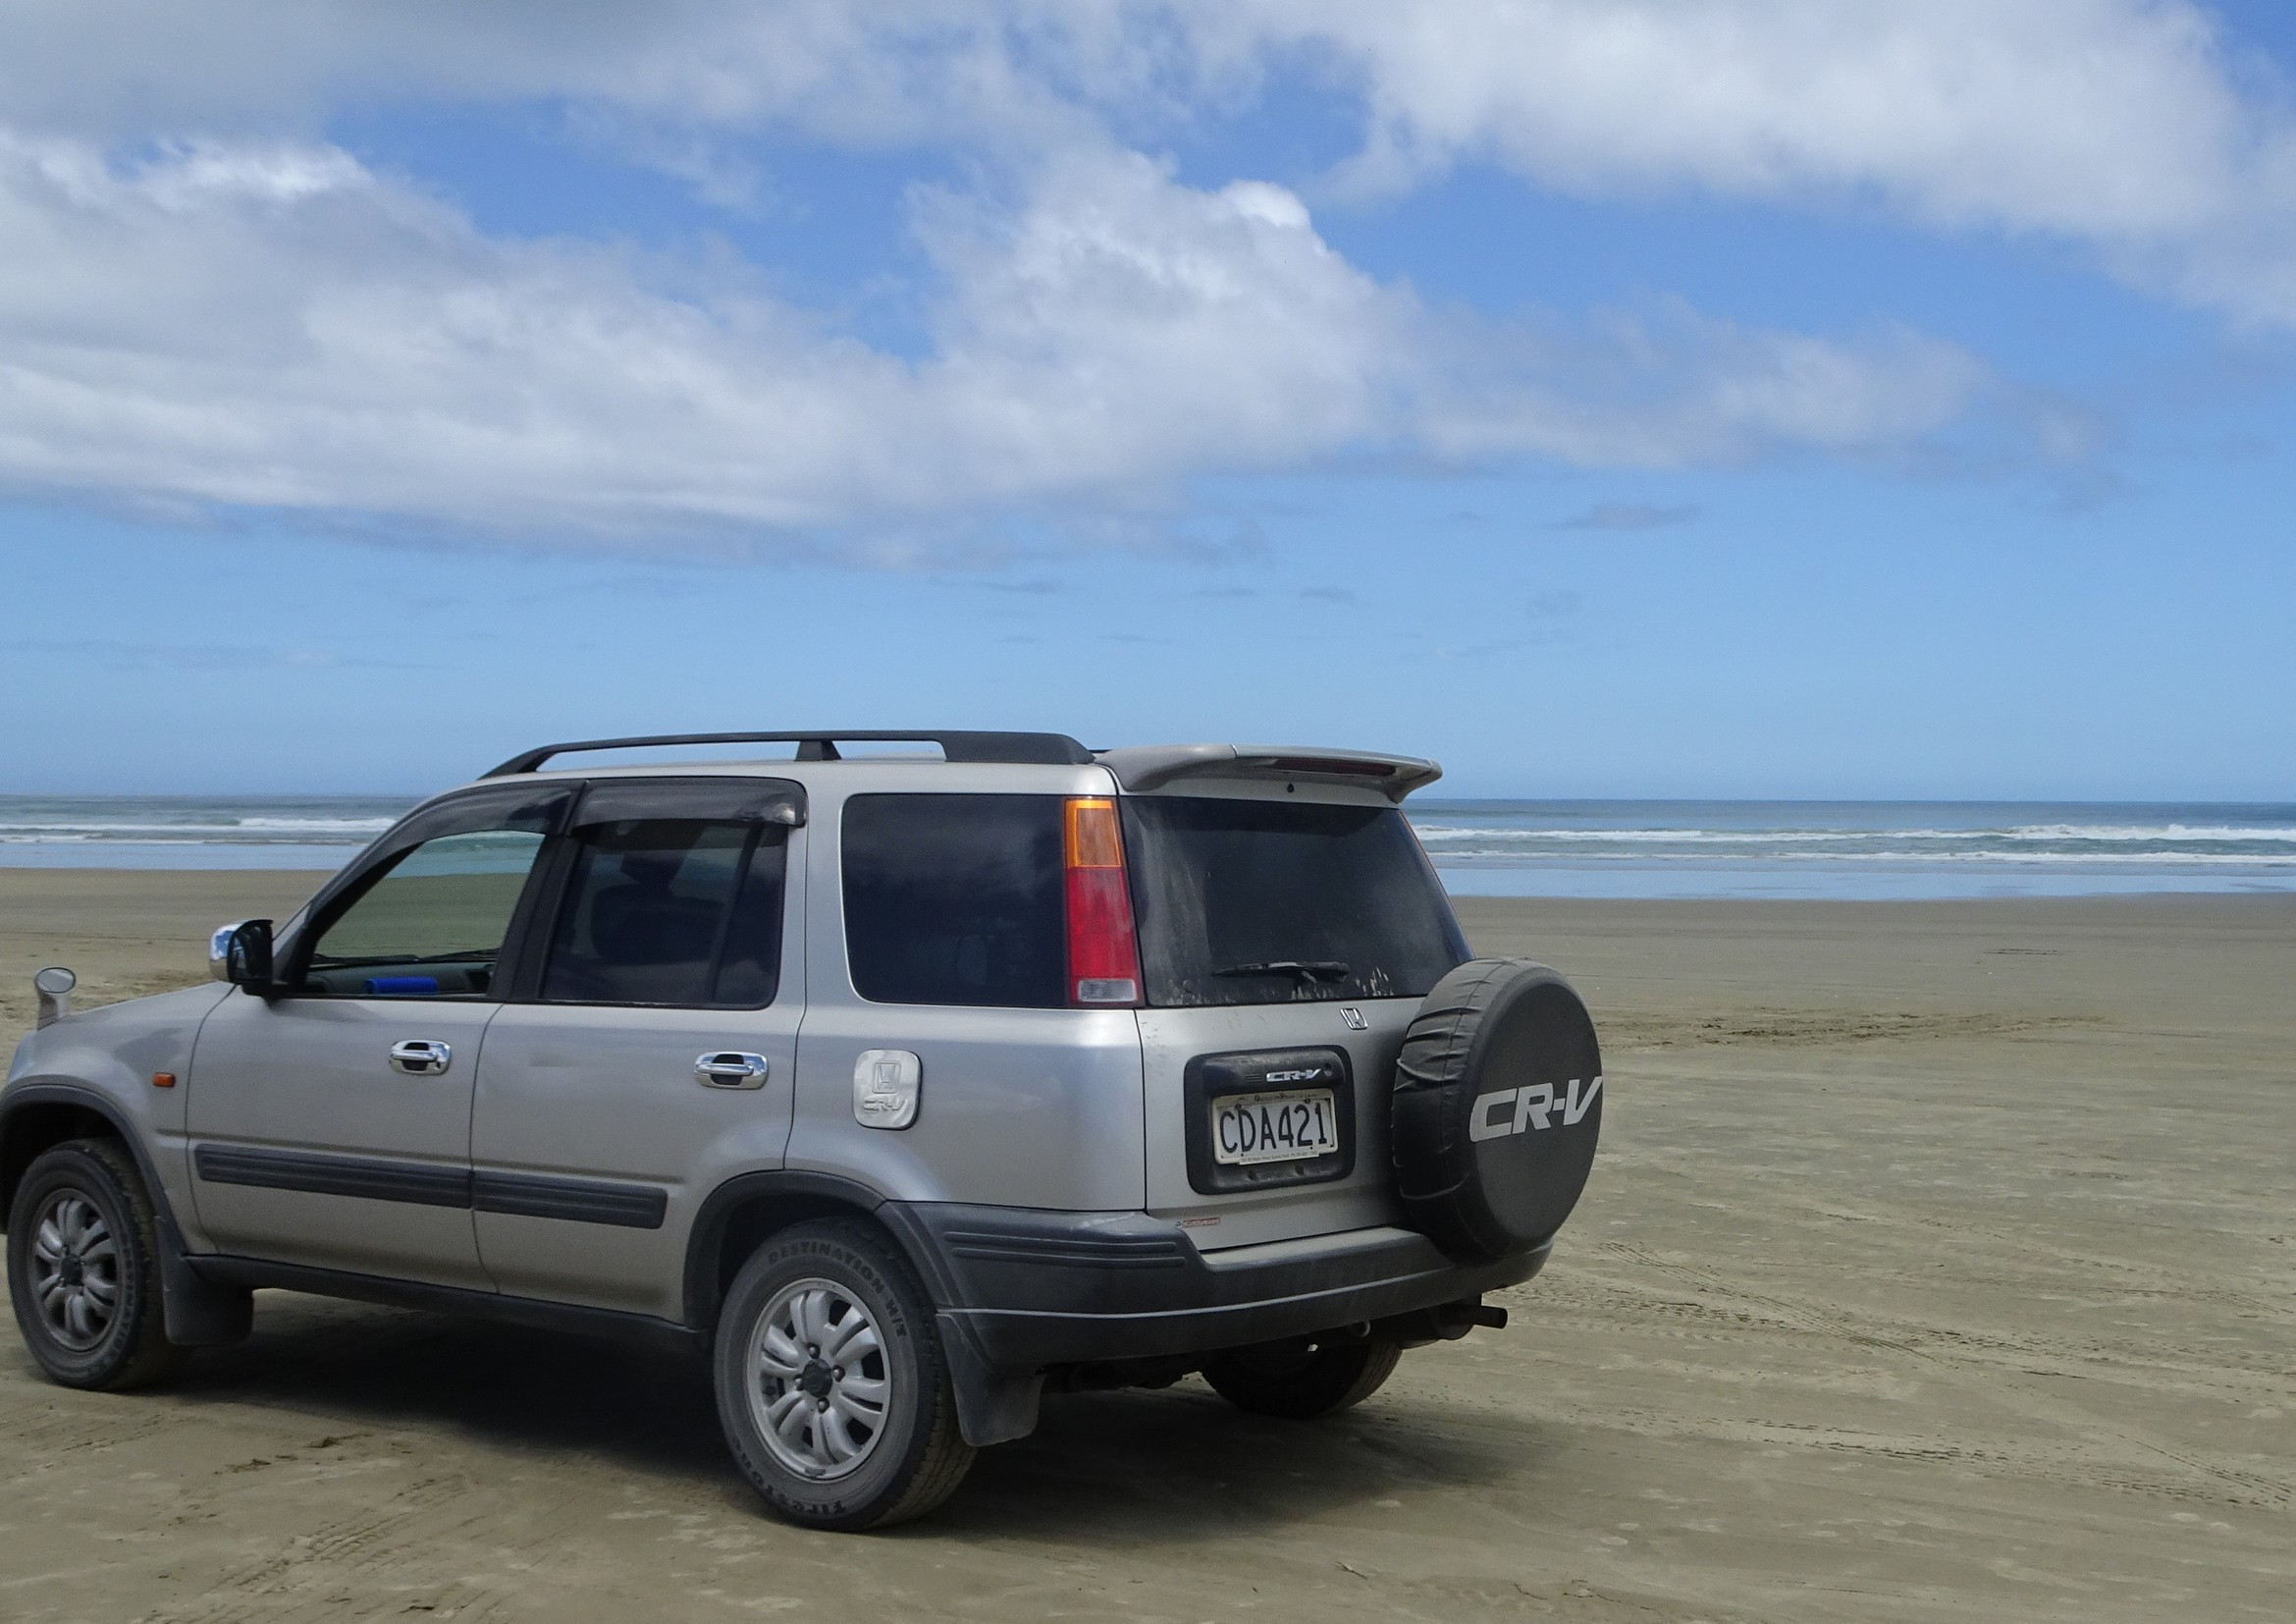 Honda crv suv et quipements frogs in nz for Honda large suv